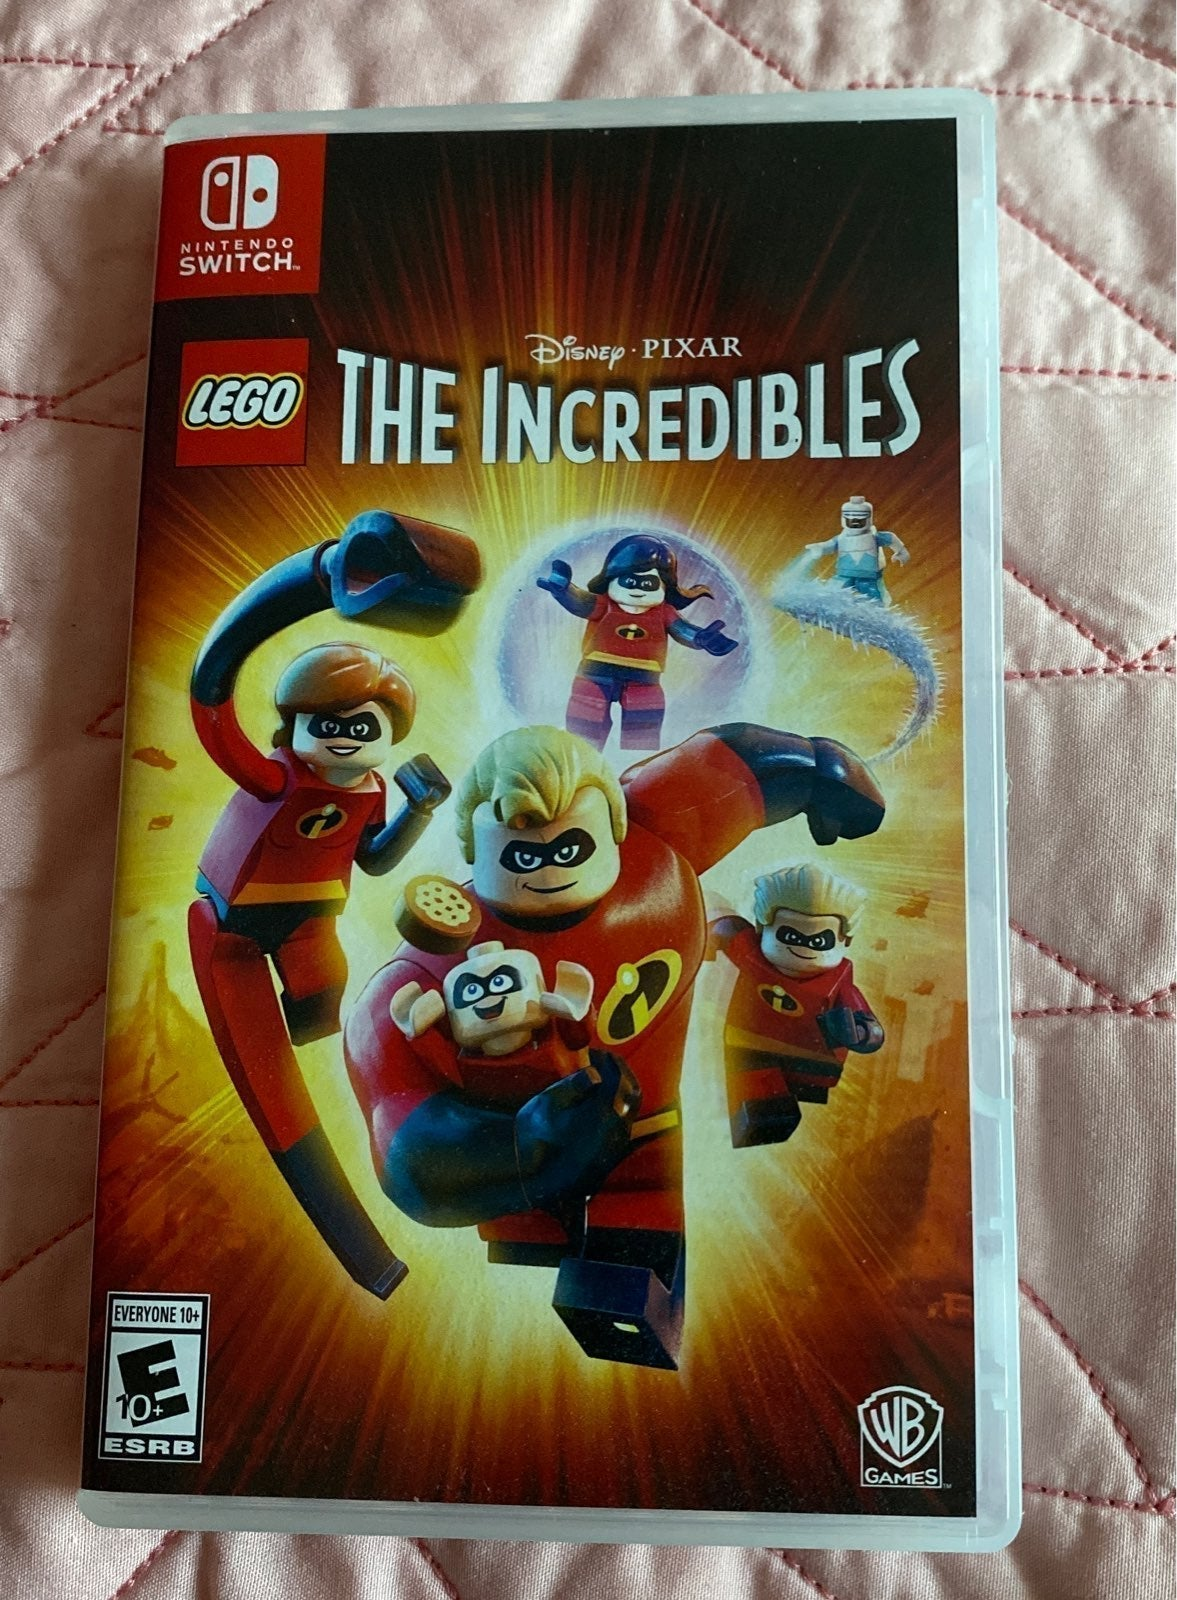 LEGO The Incredibles on Nintendo Switch